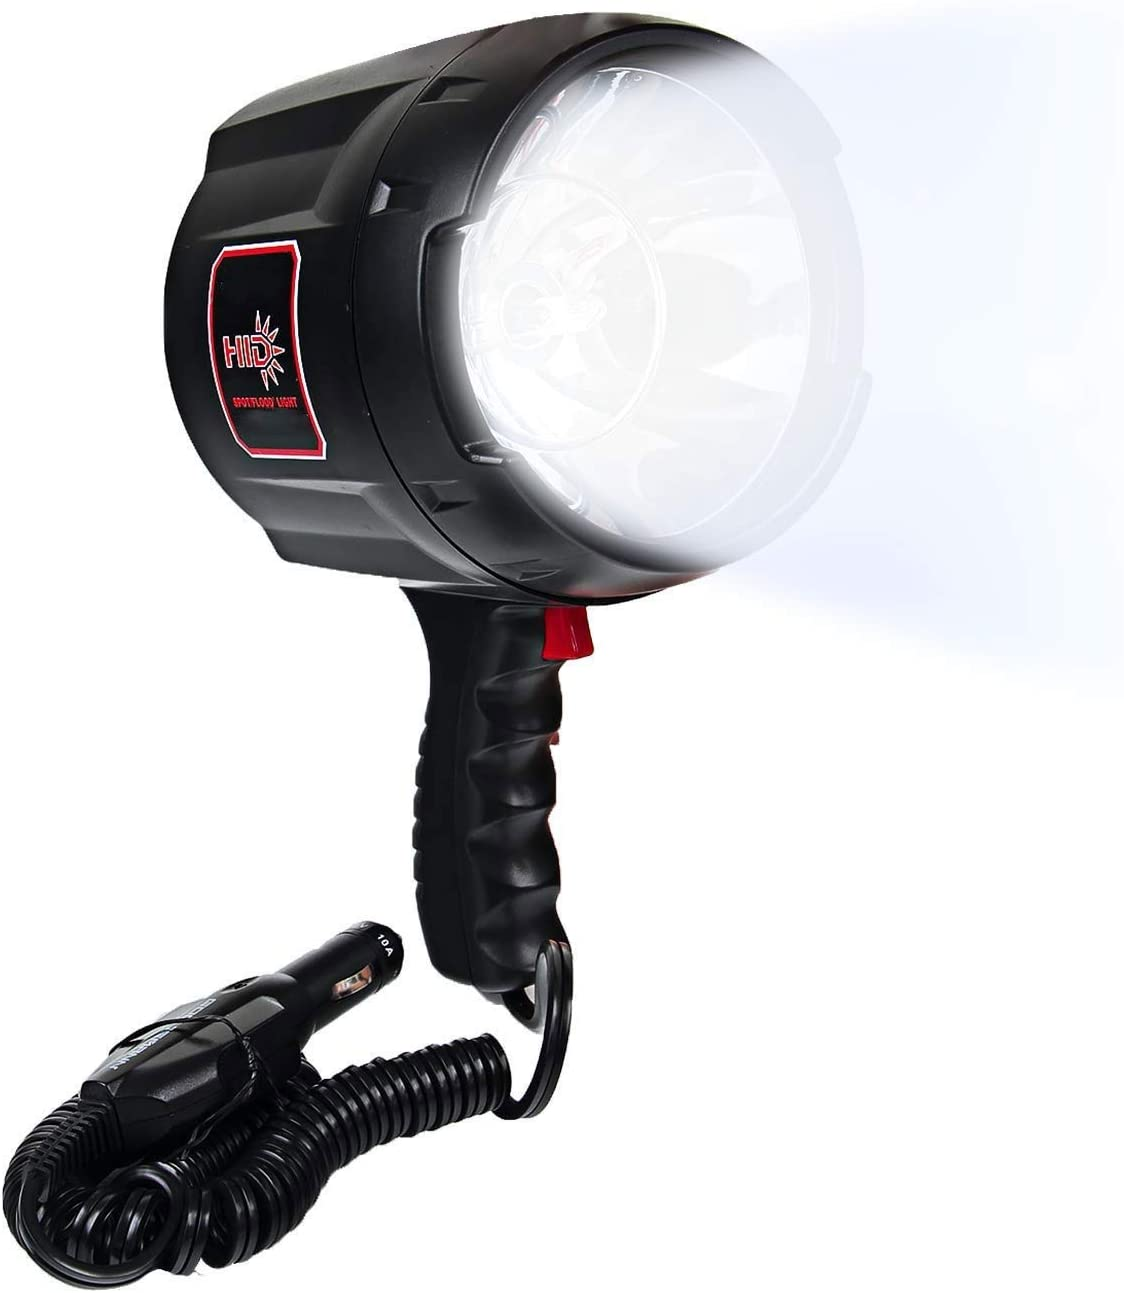 HWZGSLC Powerful 2000 Lumen HID Spotlight/Floodlight Automotive/Garage/Emergency/Boating/Fishing/Camping/Hiking/Patrolling Spotlight